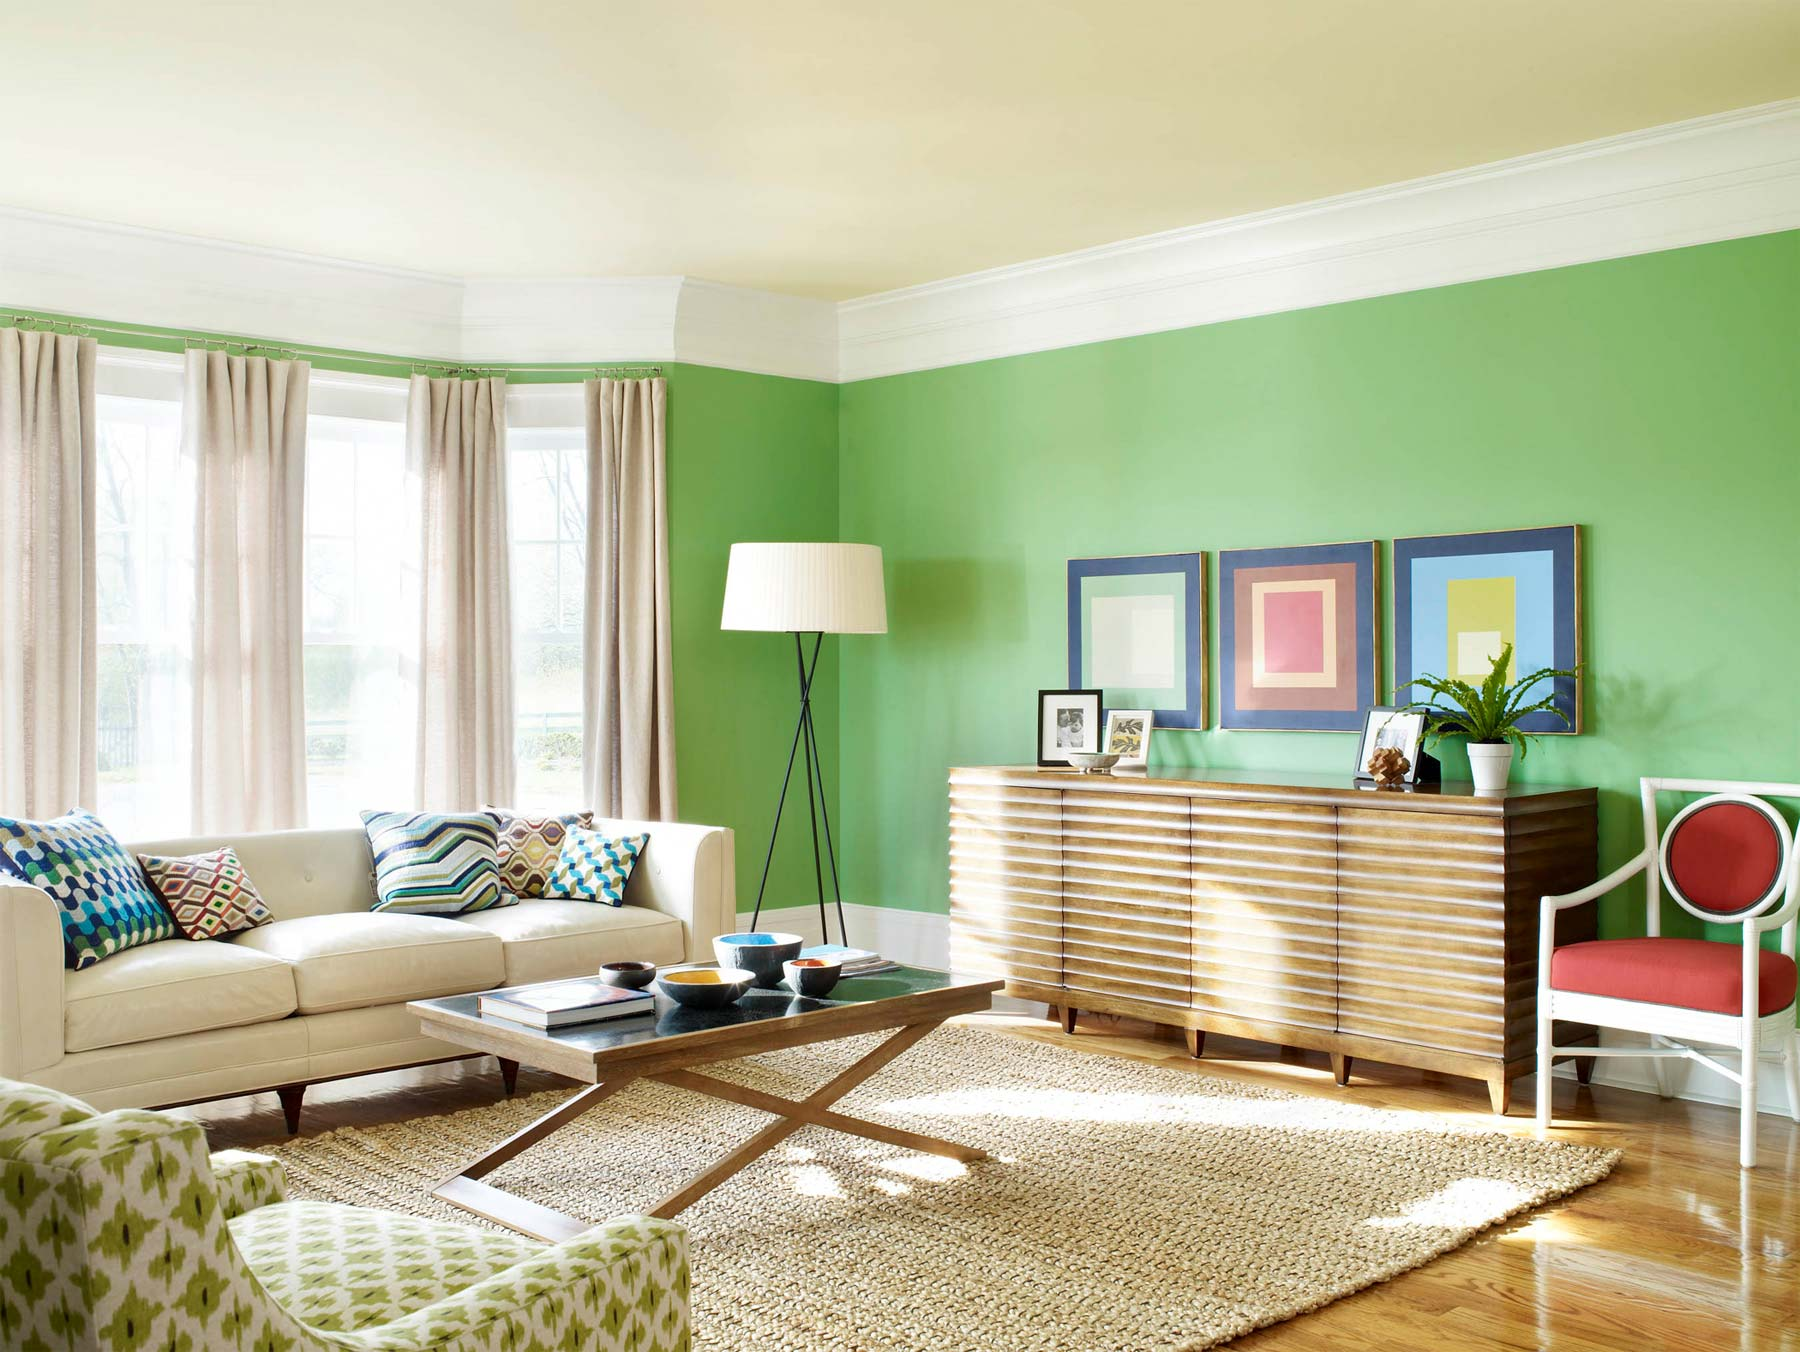 Remarkable Living Room Paint Colors Interior 1800 x 1352 · 263 kB · jpeg